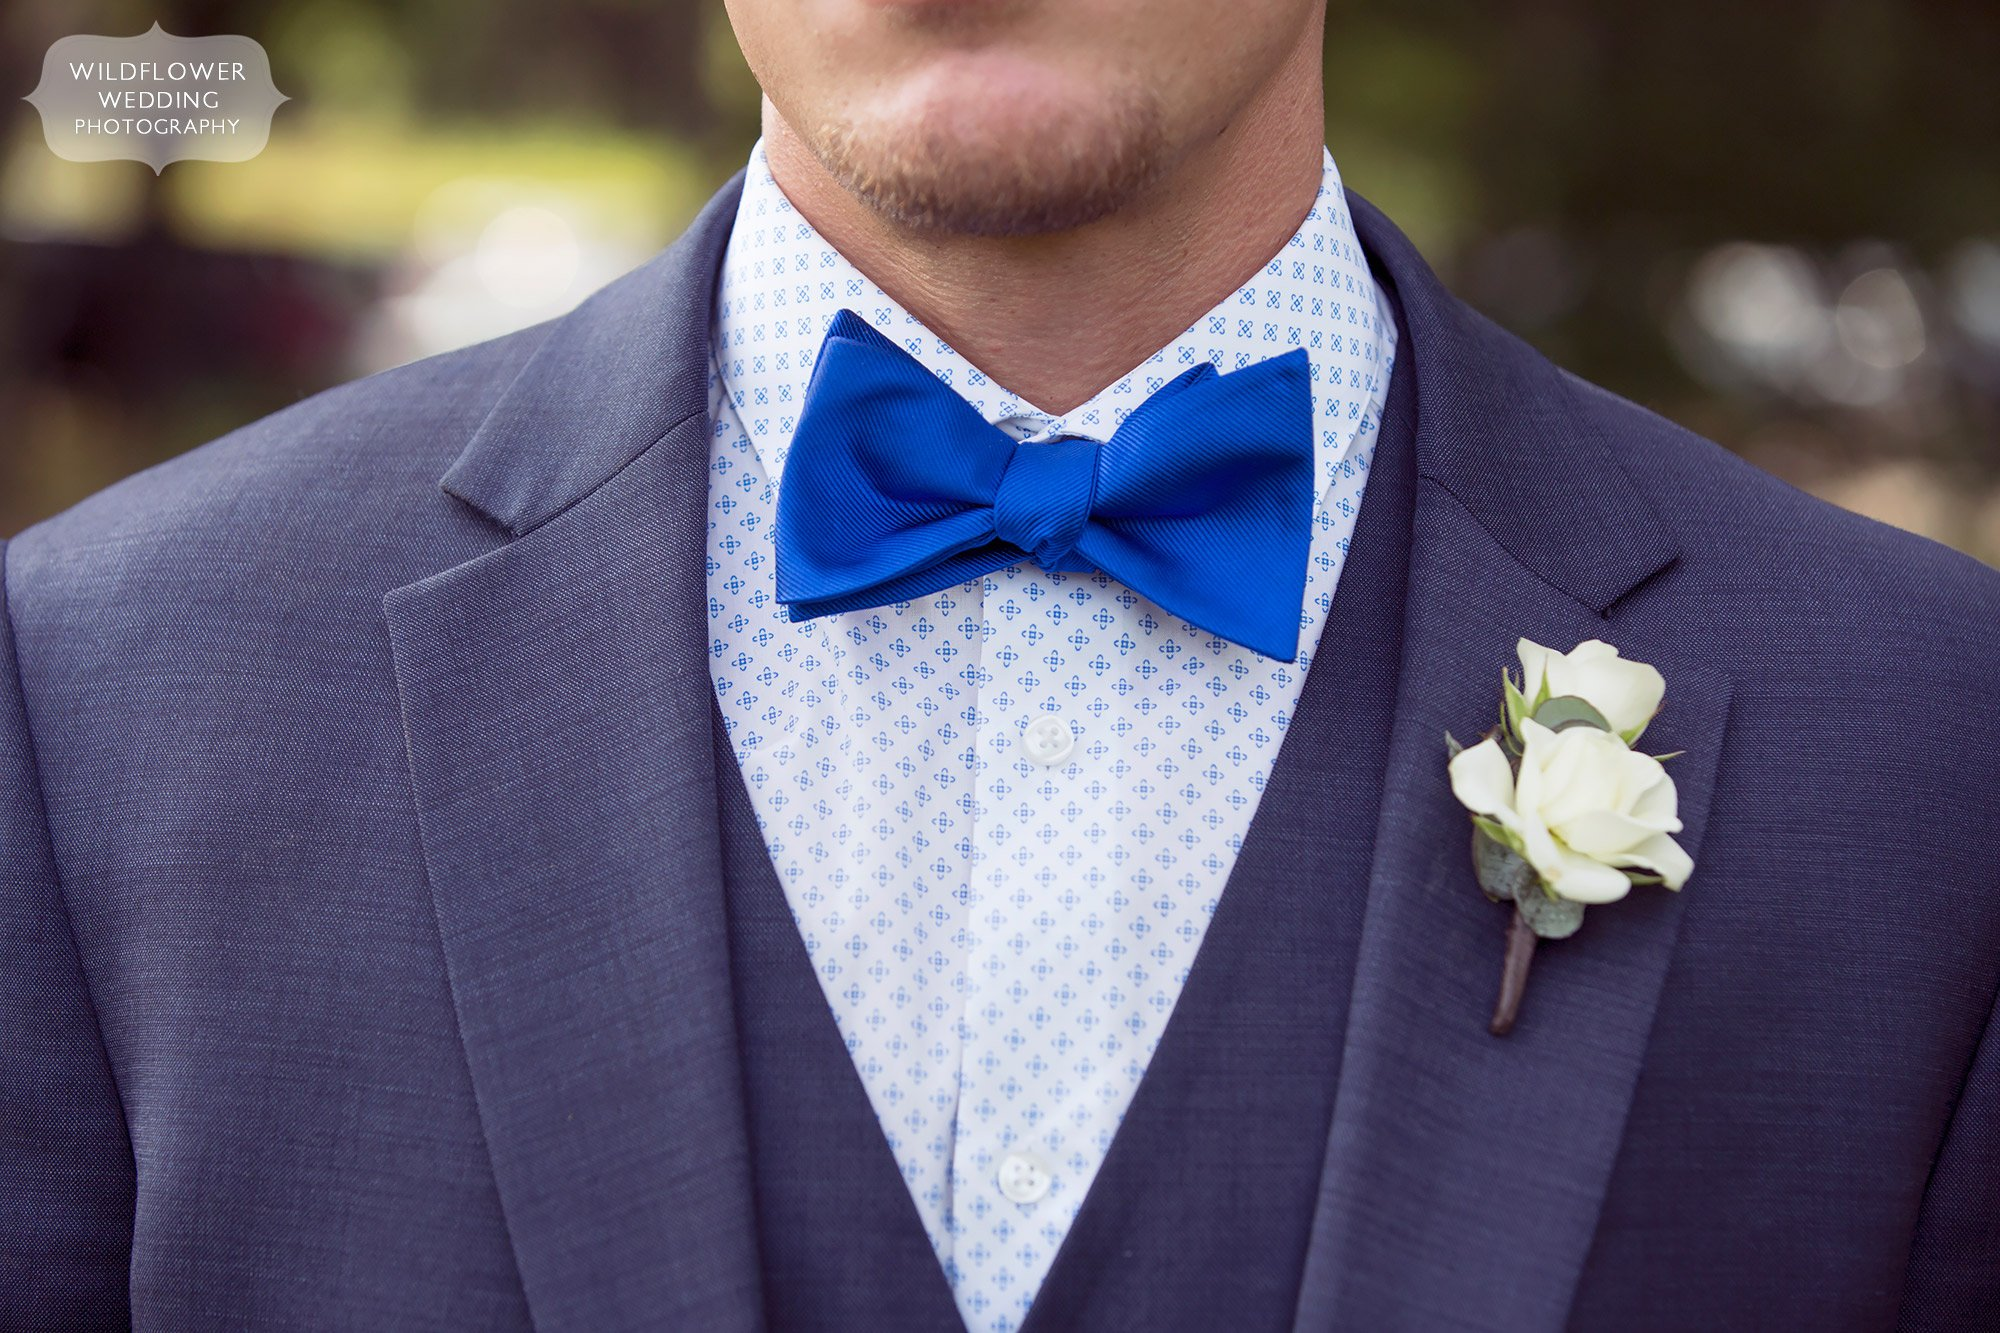 The groom wears a royal blue bowtie for his country wedding in southern MO.